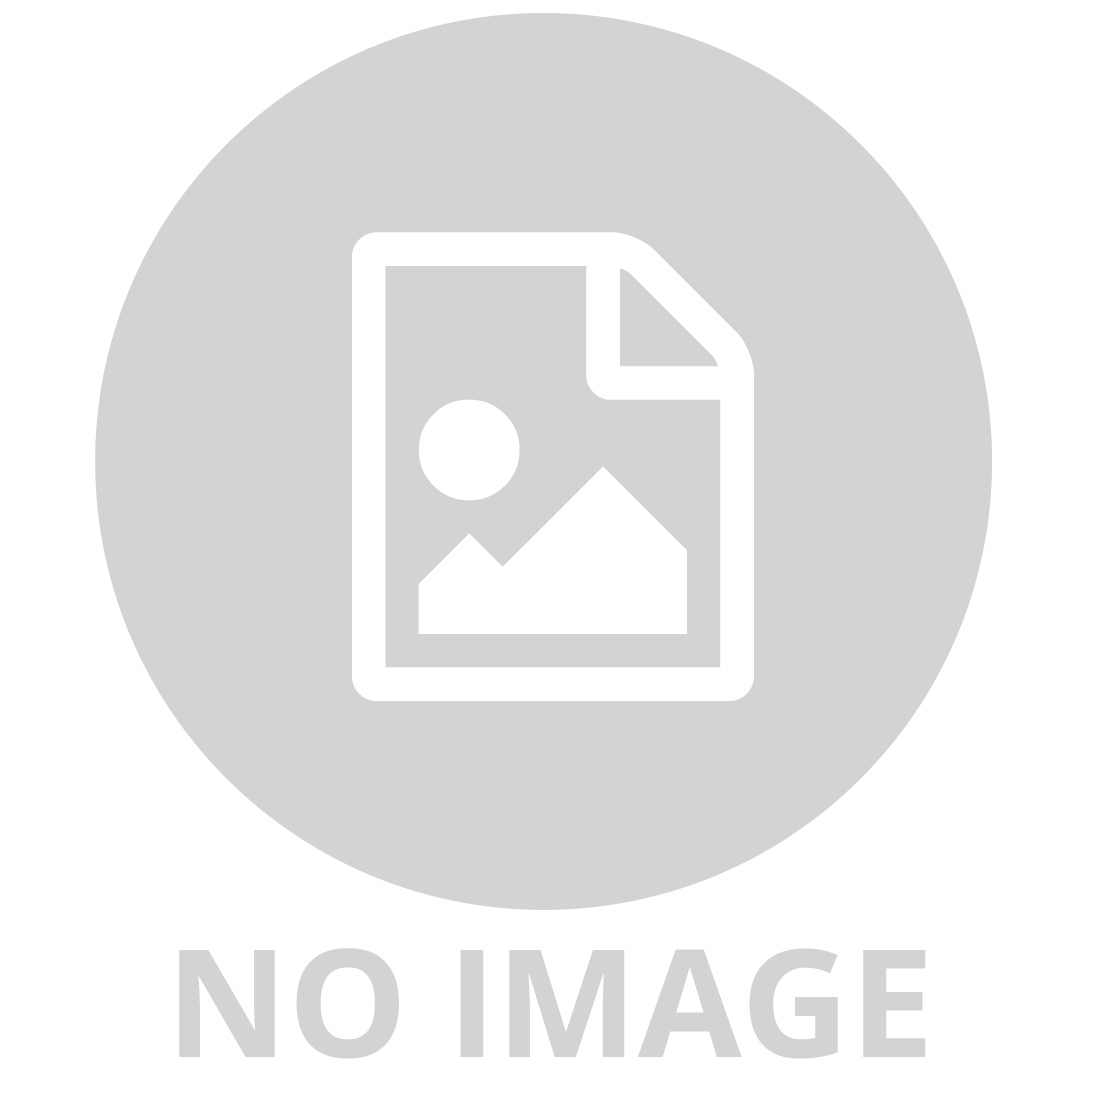 BEANIE BOOS MEDIUM SEQUINS CHECKS PINK/BLACK/GOLD OWL